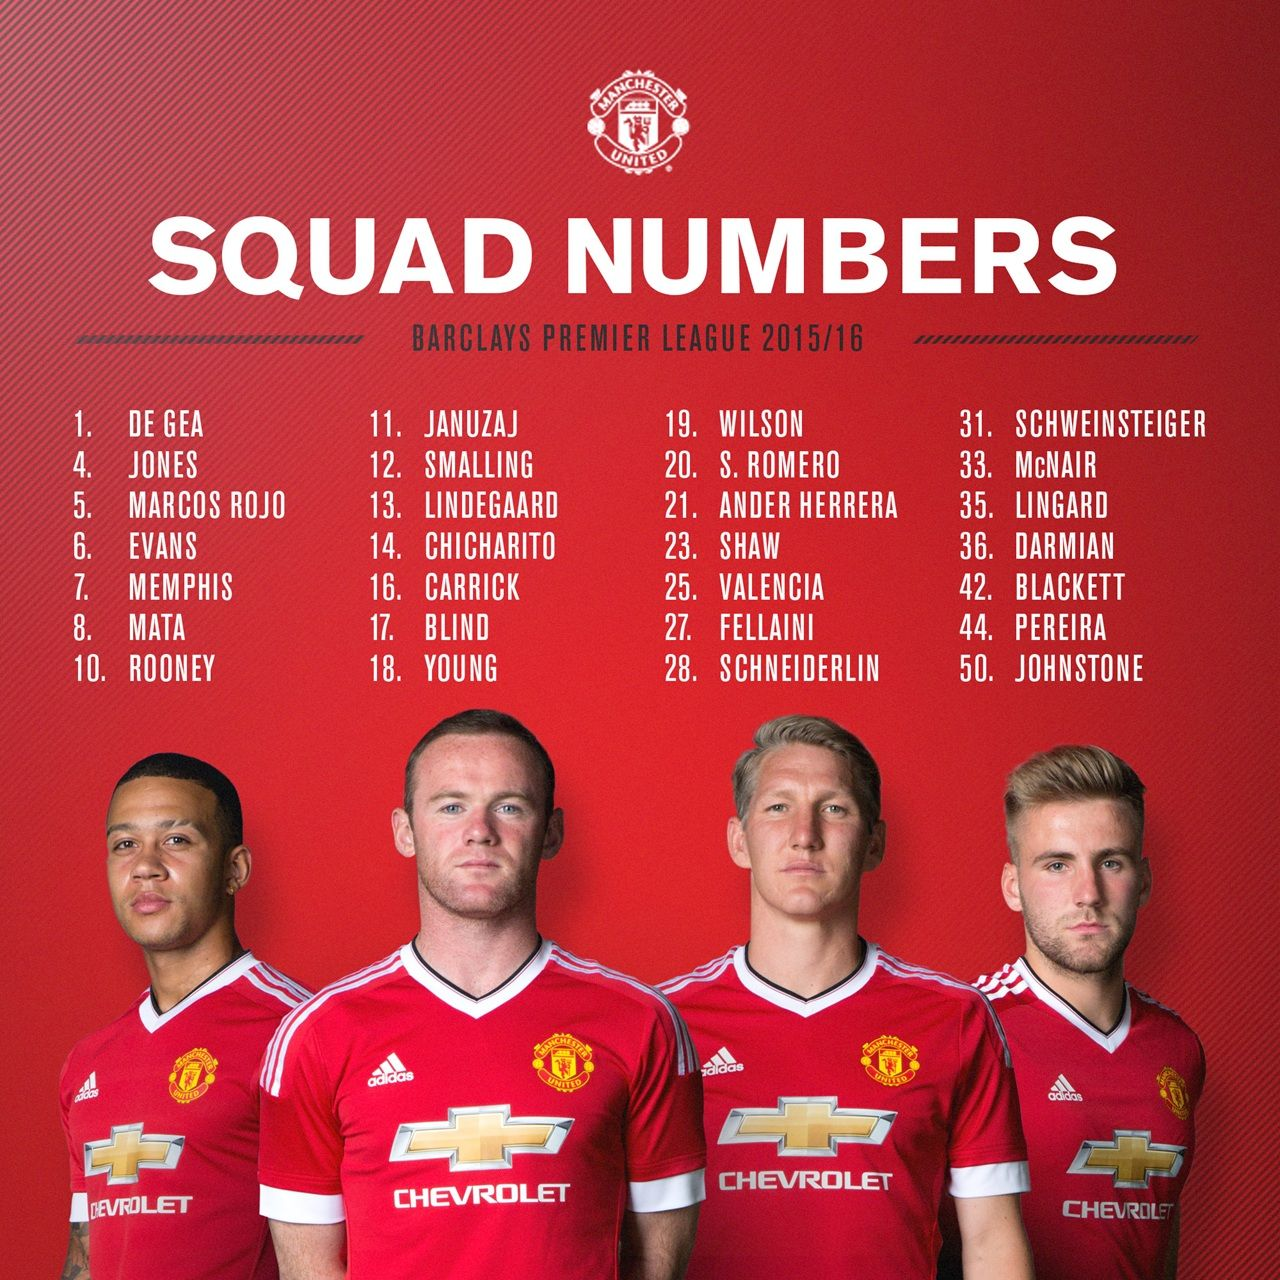 Man Utd Bedroom Wallpaper Revealed Manchester United Shirt Numbers 2015 16 Official